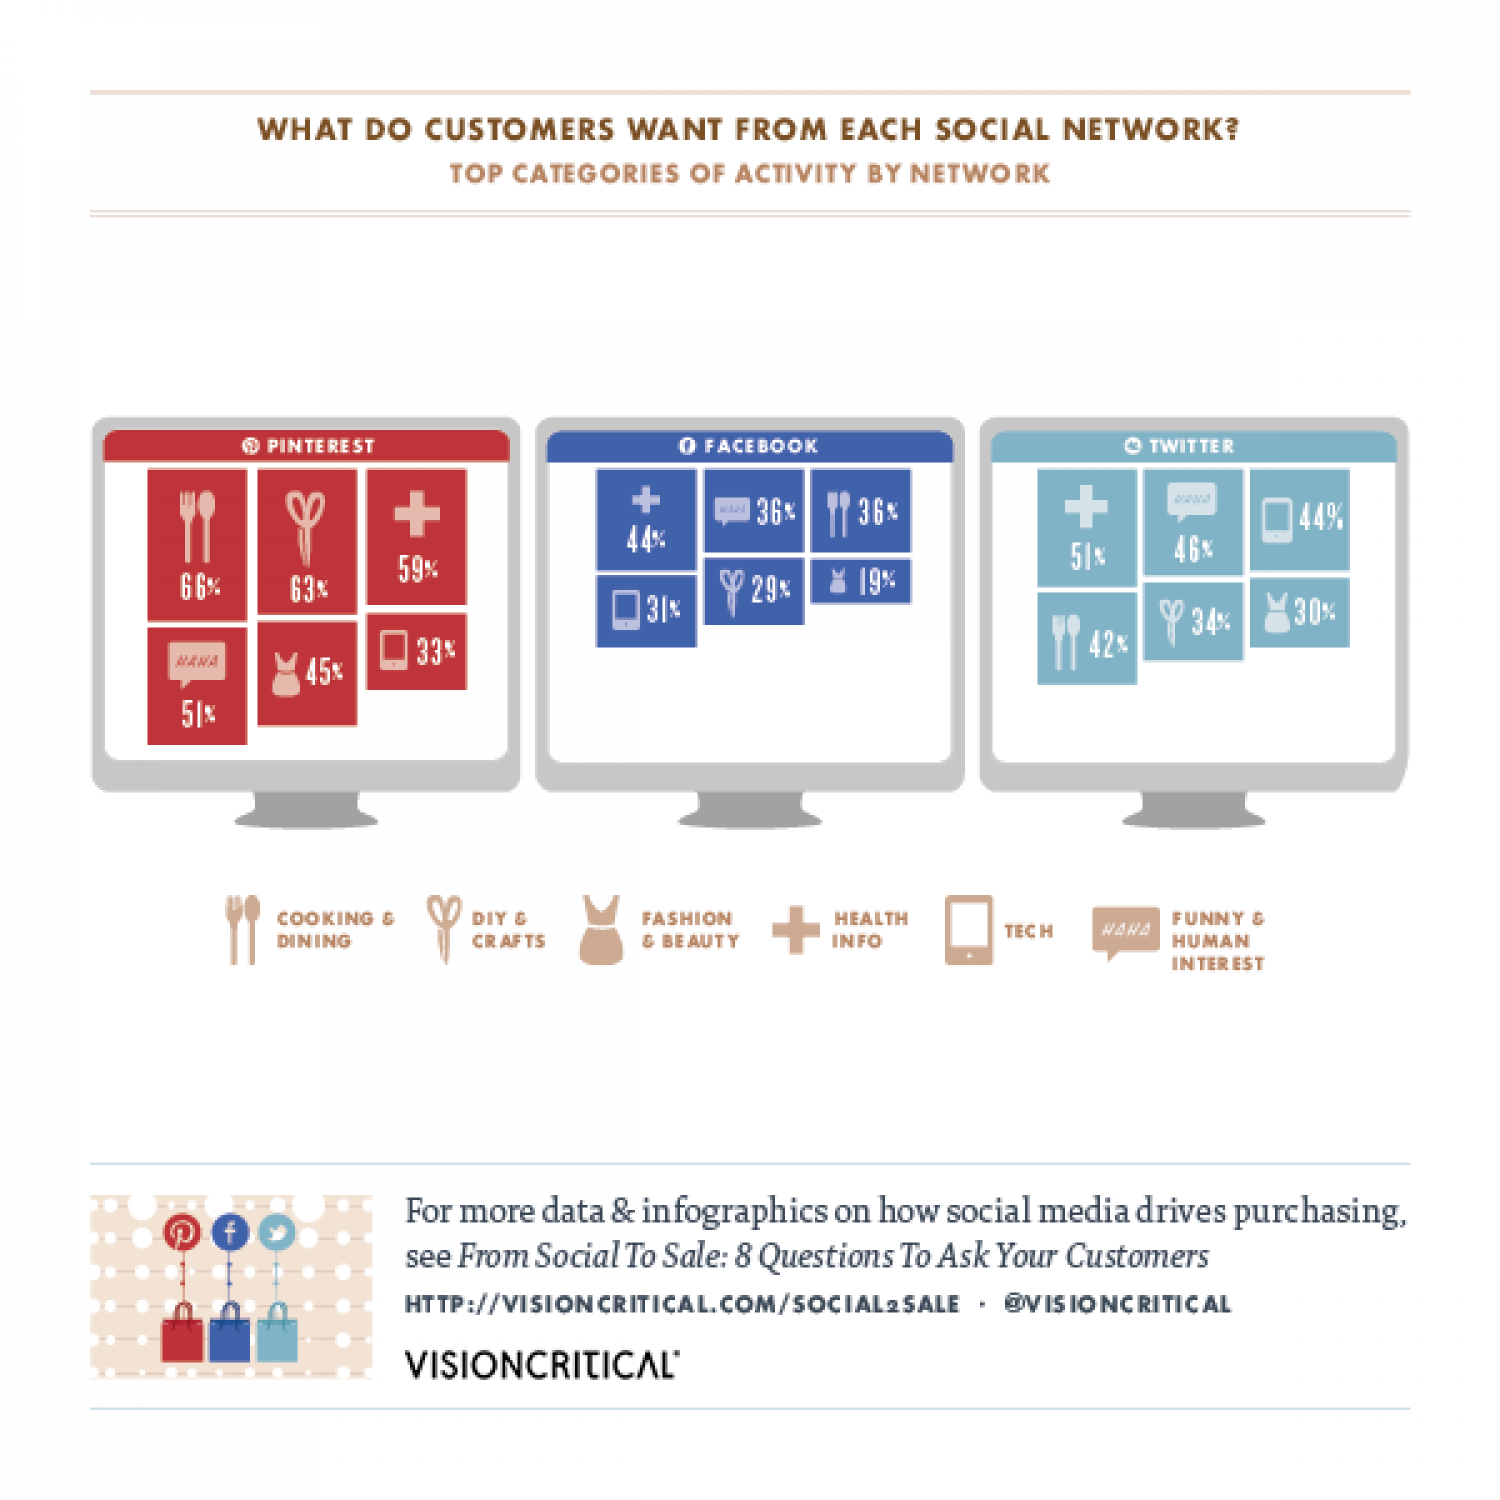 From Social to Sale: What Do Customers Want From Each Social Network? Infographic